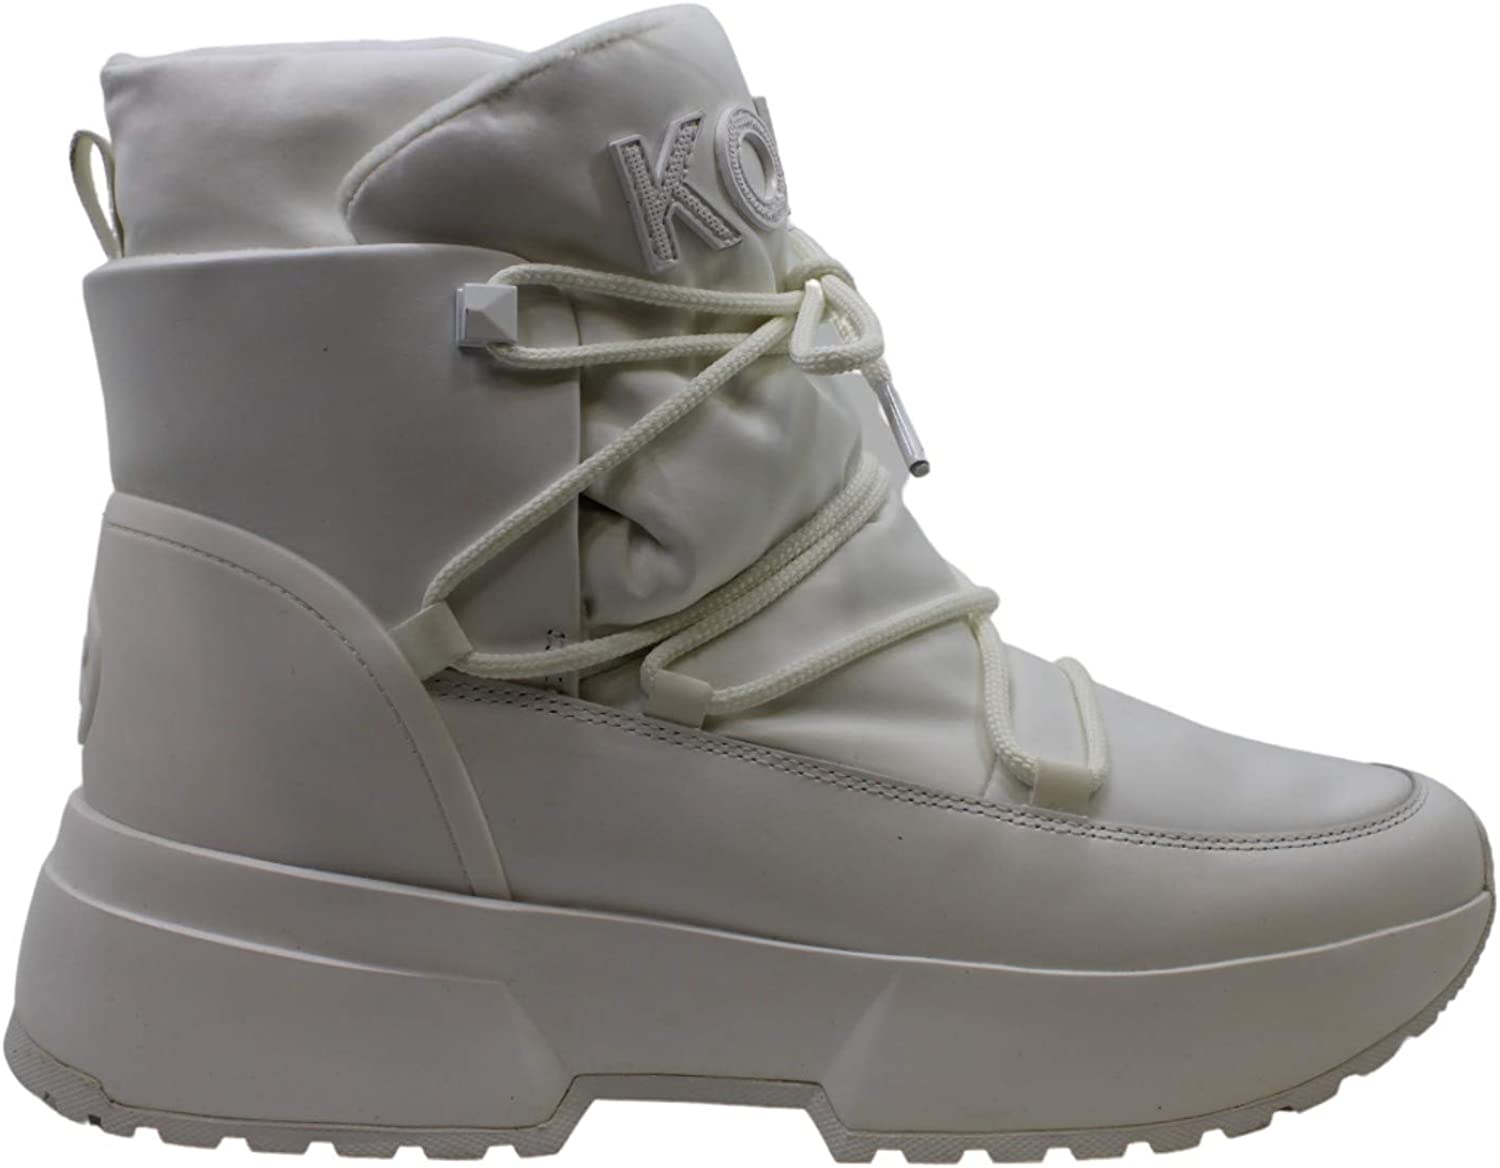 Michael Sales Kors Womens Cassia Some reservation Lamb White Fur 6 Winter Boots